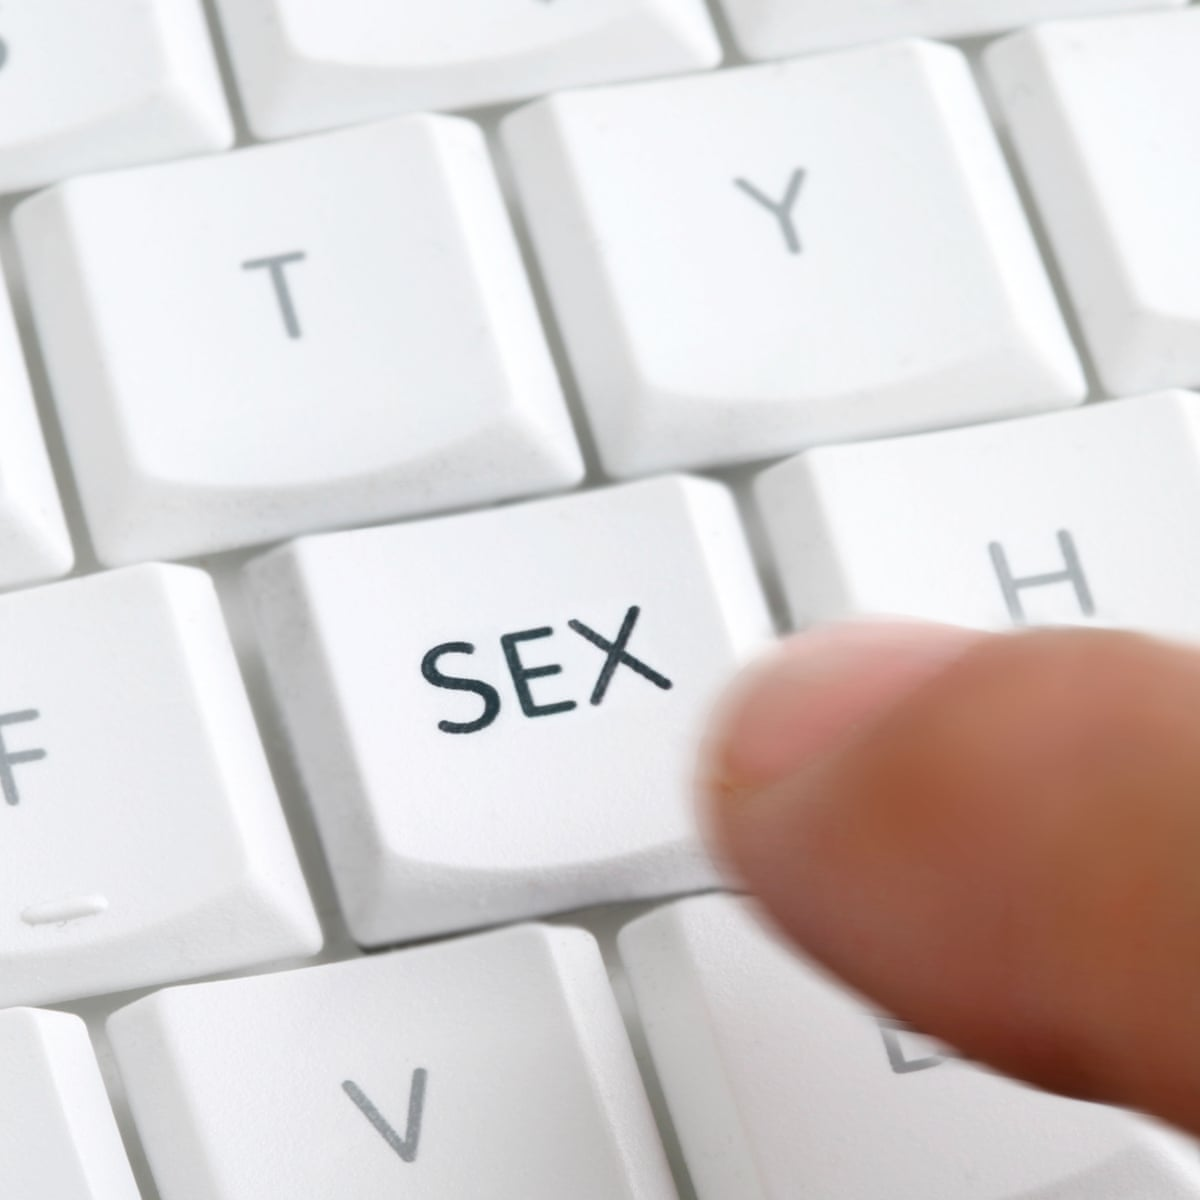 Abnormal Sexual Desir Porn i'm happy, so why do i fantasise about sex abuse?   mariella